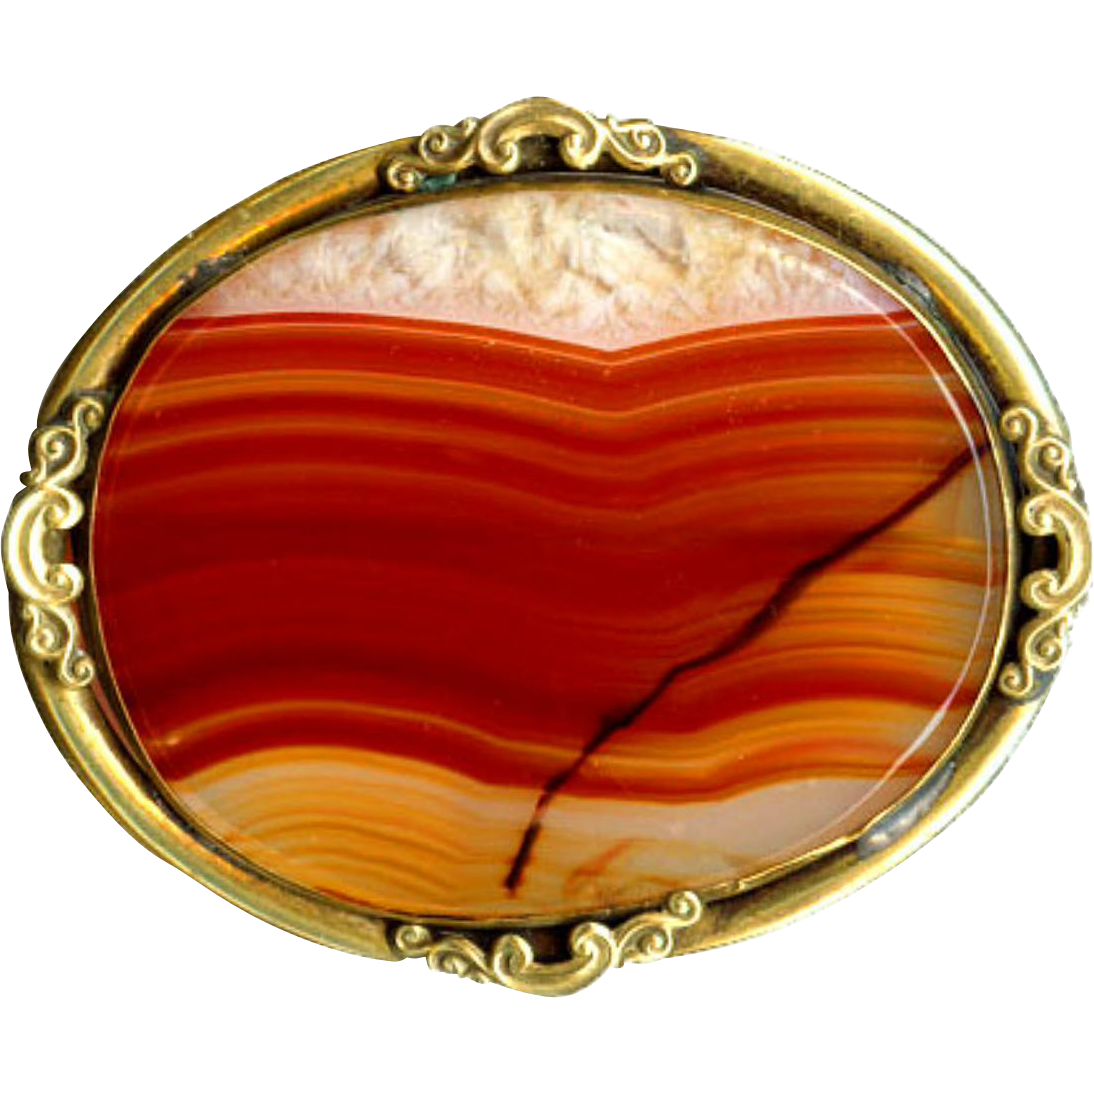 Brooch--Very Large Mid-19th C. Translucent Banded Scottish Agate in Gold-plated Brass with Rococo Scrolls